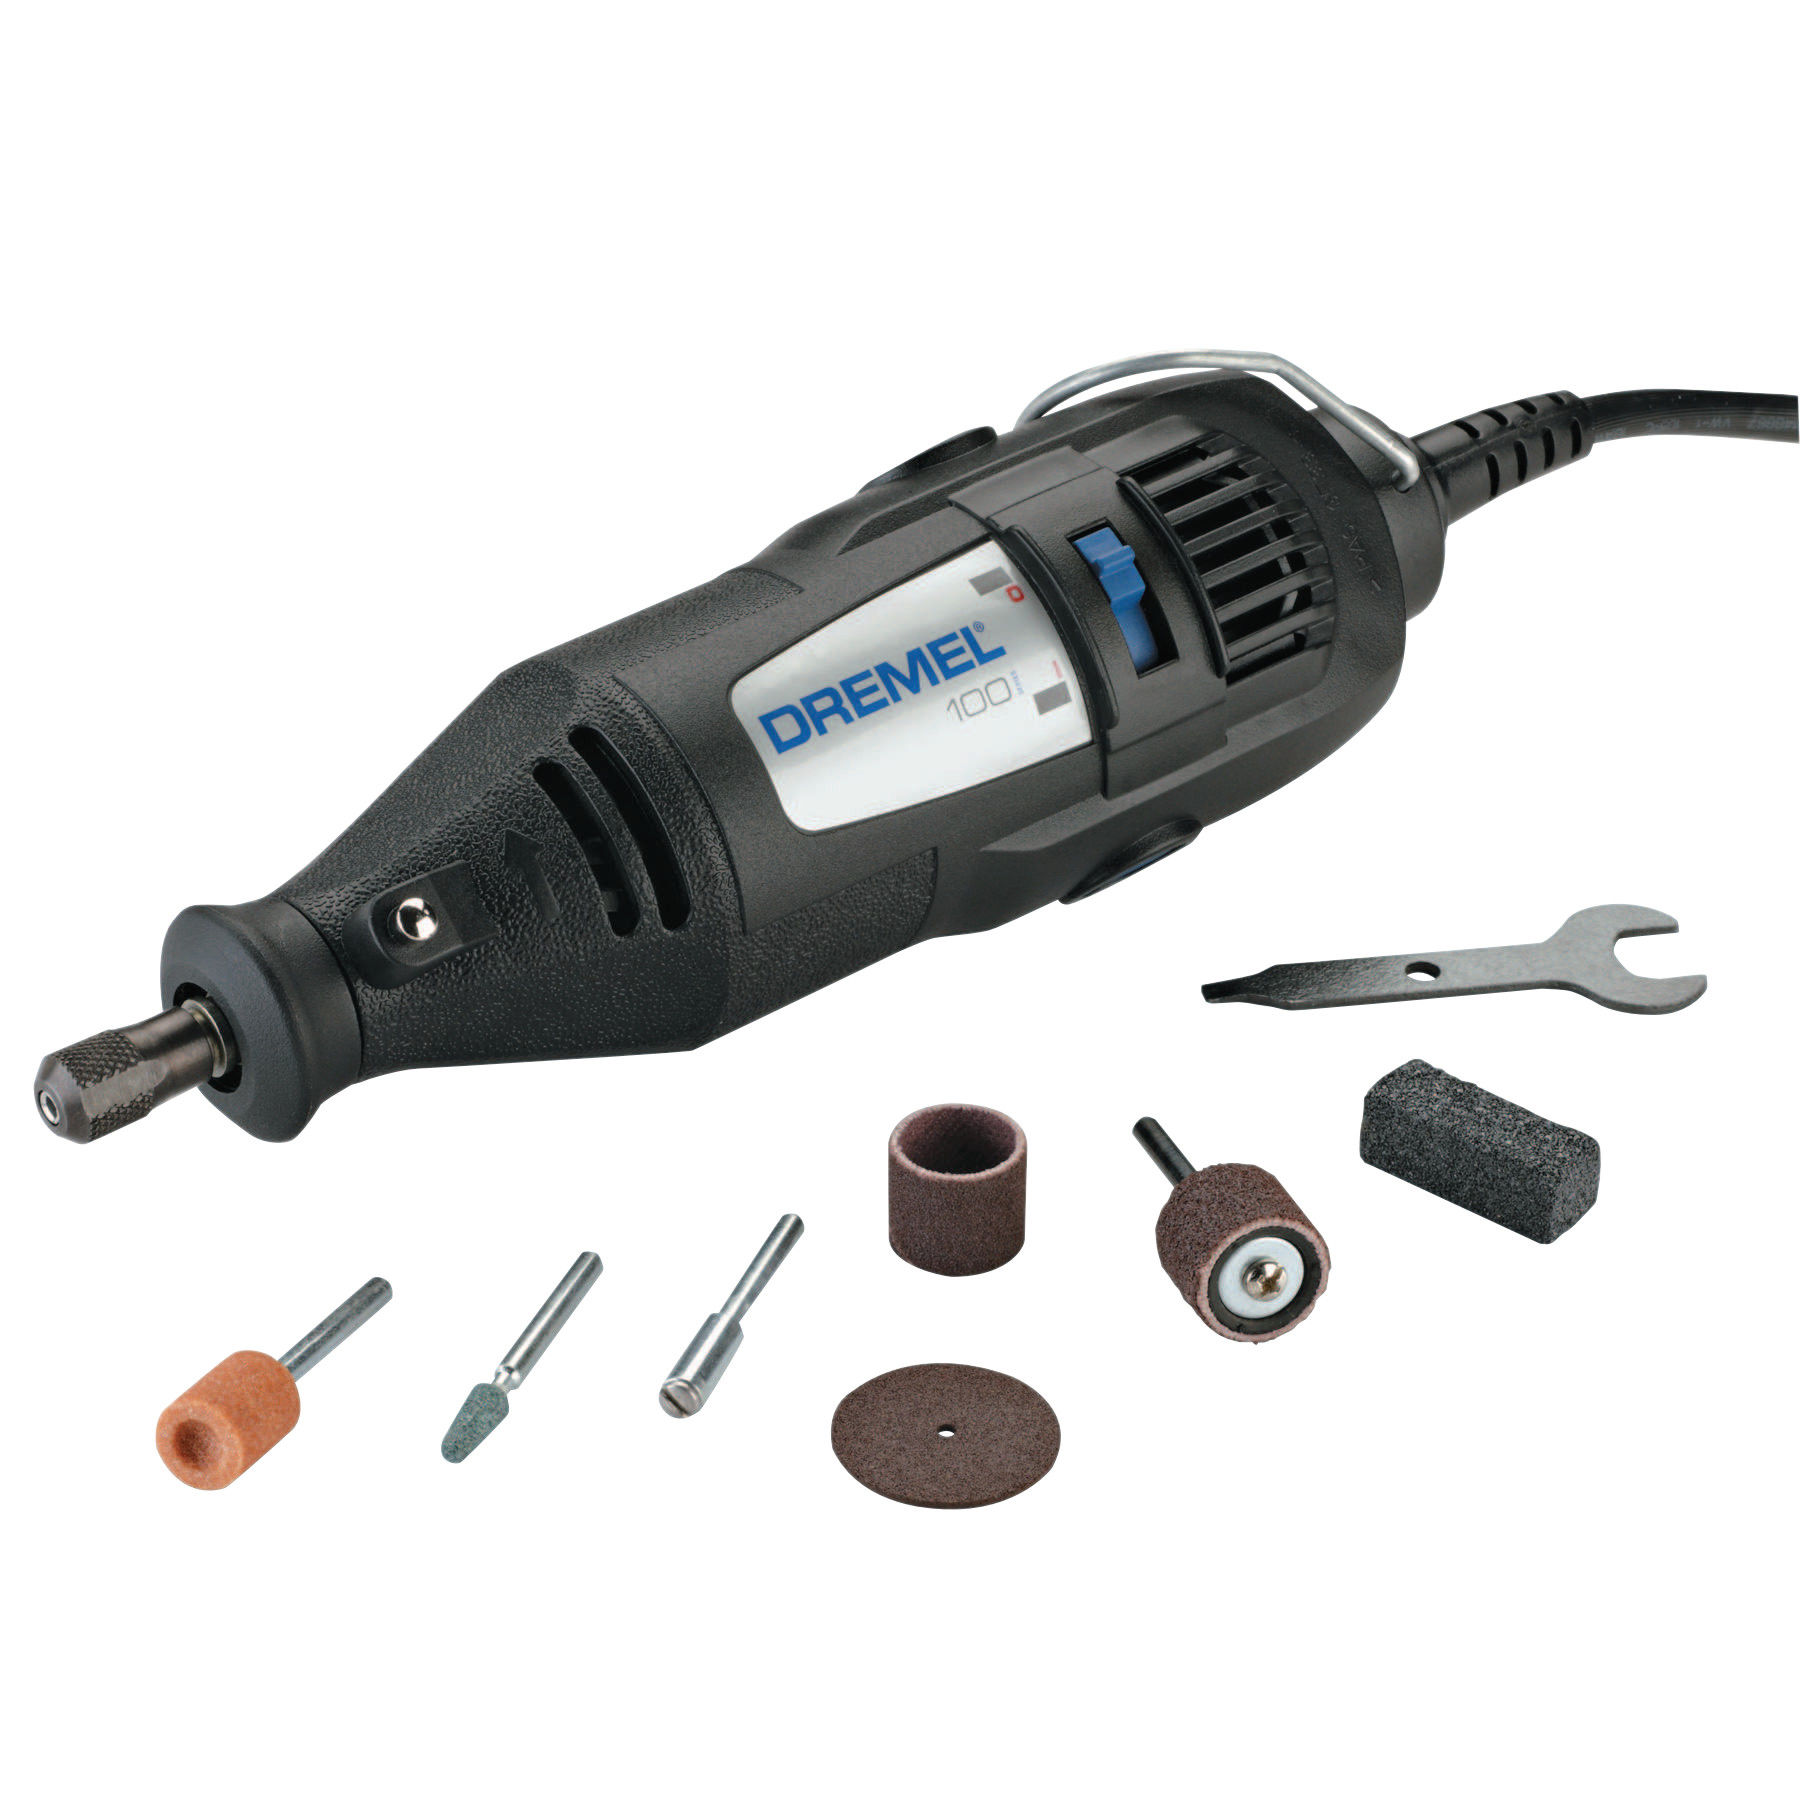 Dremel 100 Series Rotary Tools, 1-Speed, 35,000 rpm, (7) Assorted Accessories